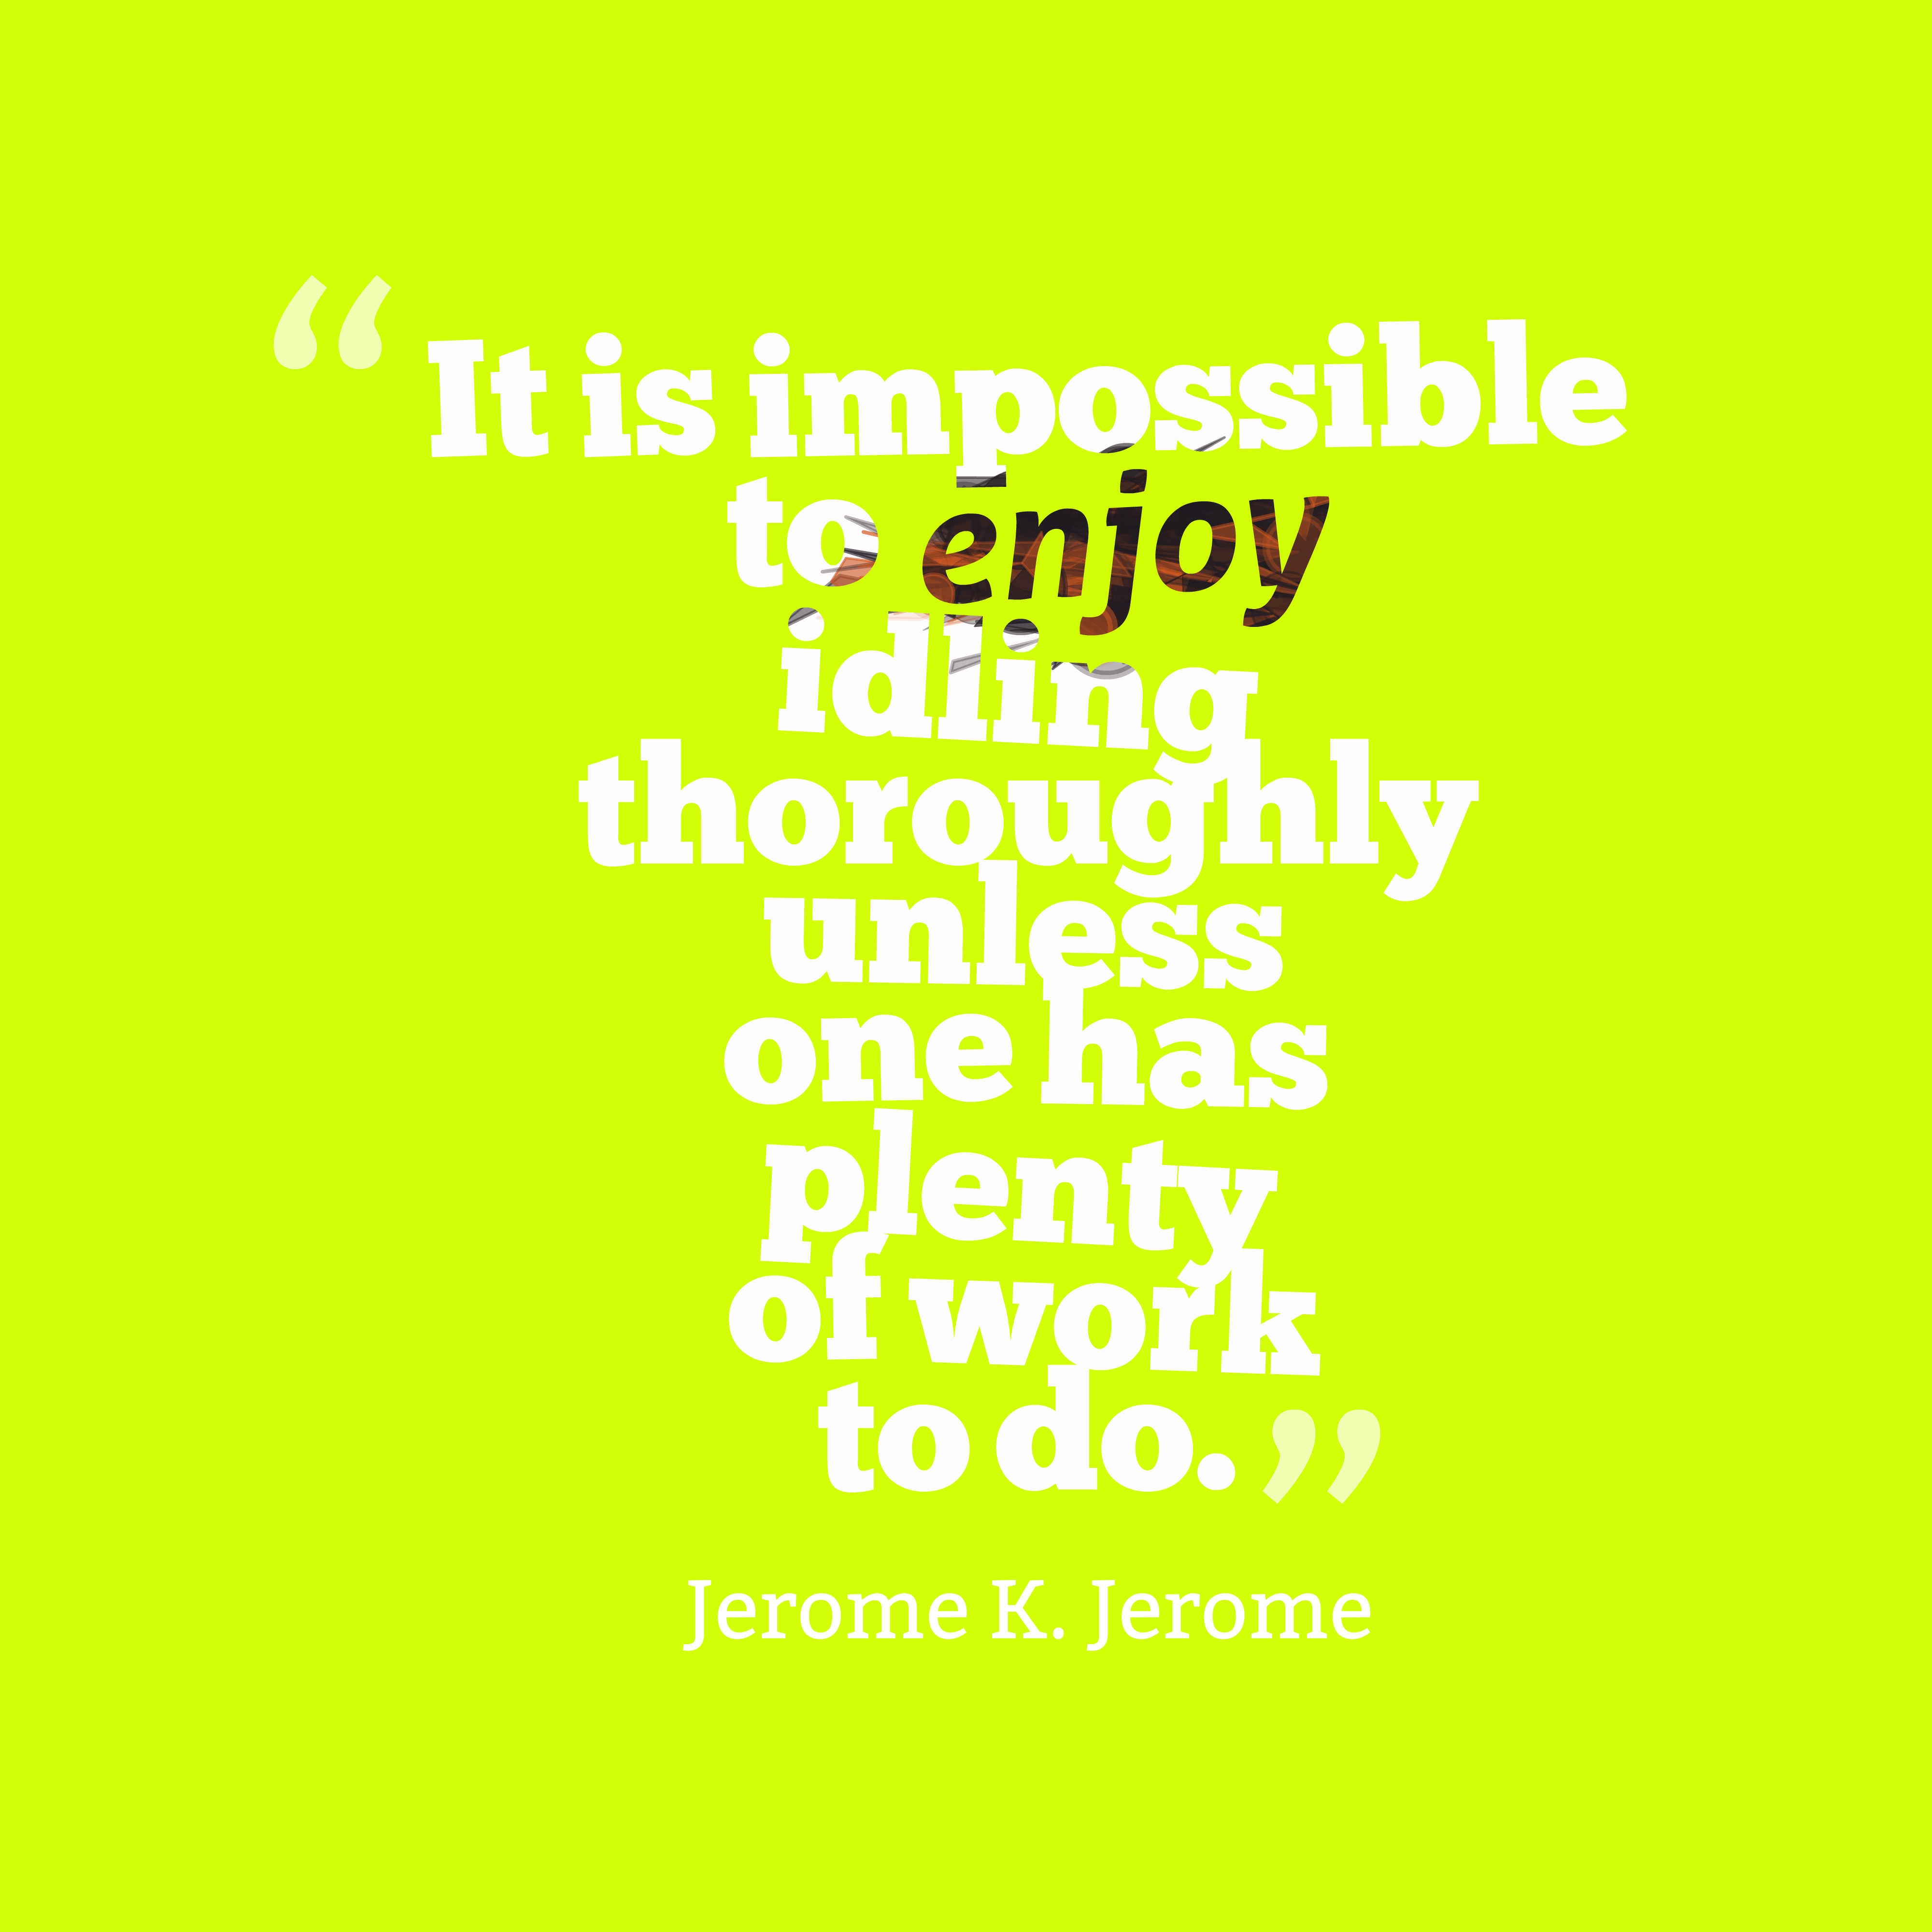 Quotes image of It is impossible to enjoy idling thoroughly unless one has plenty of work to do.